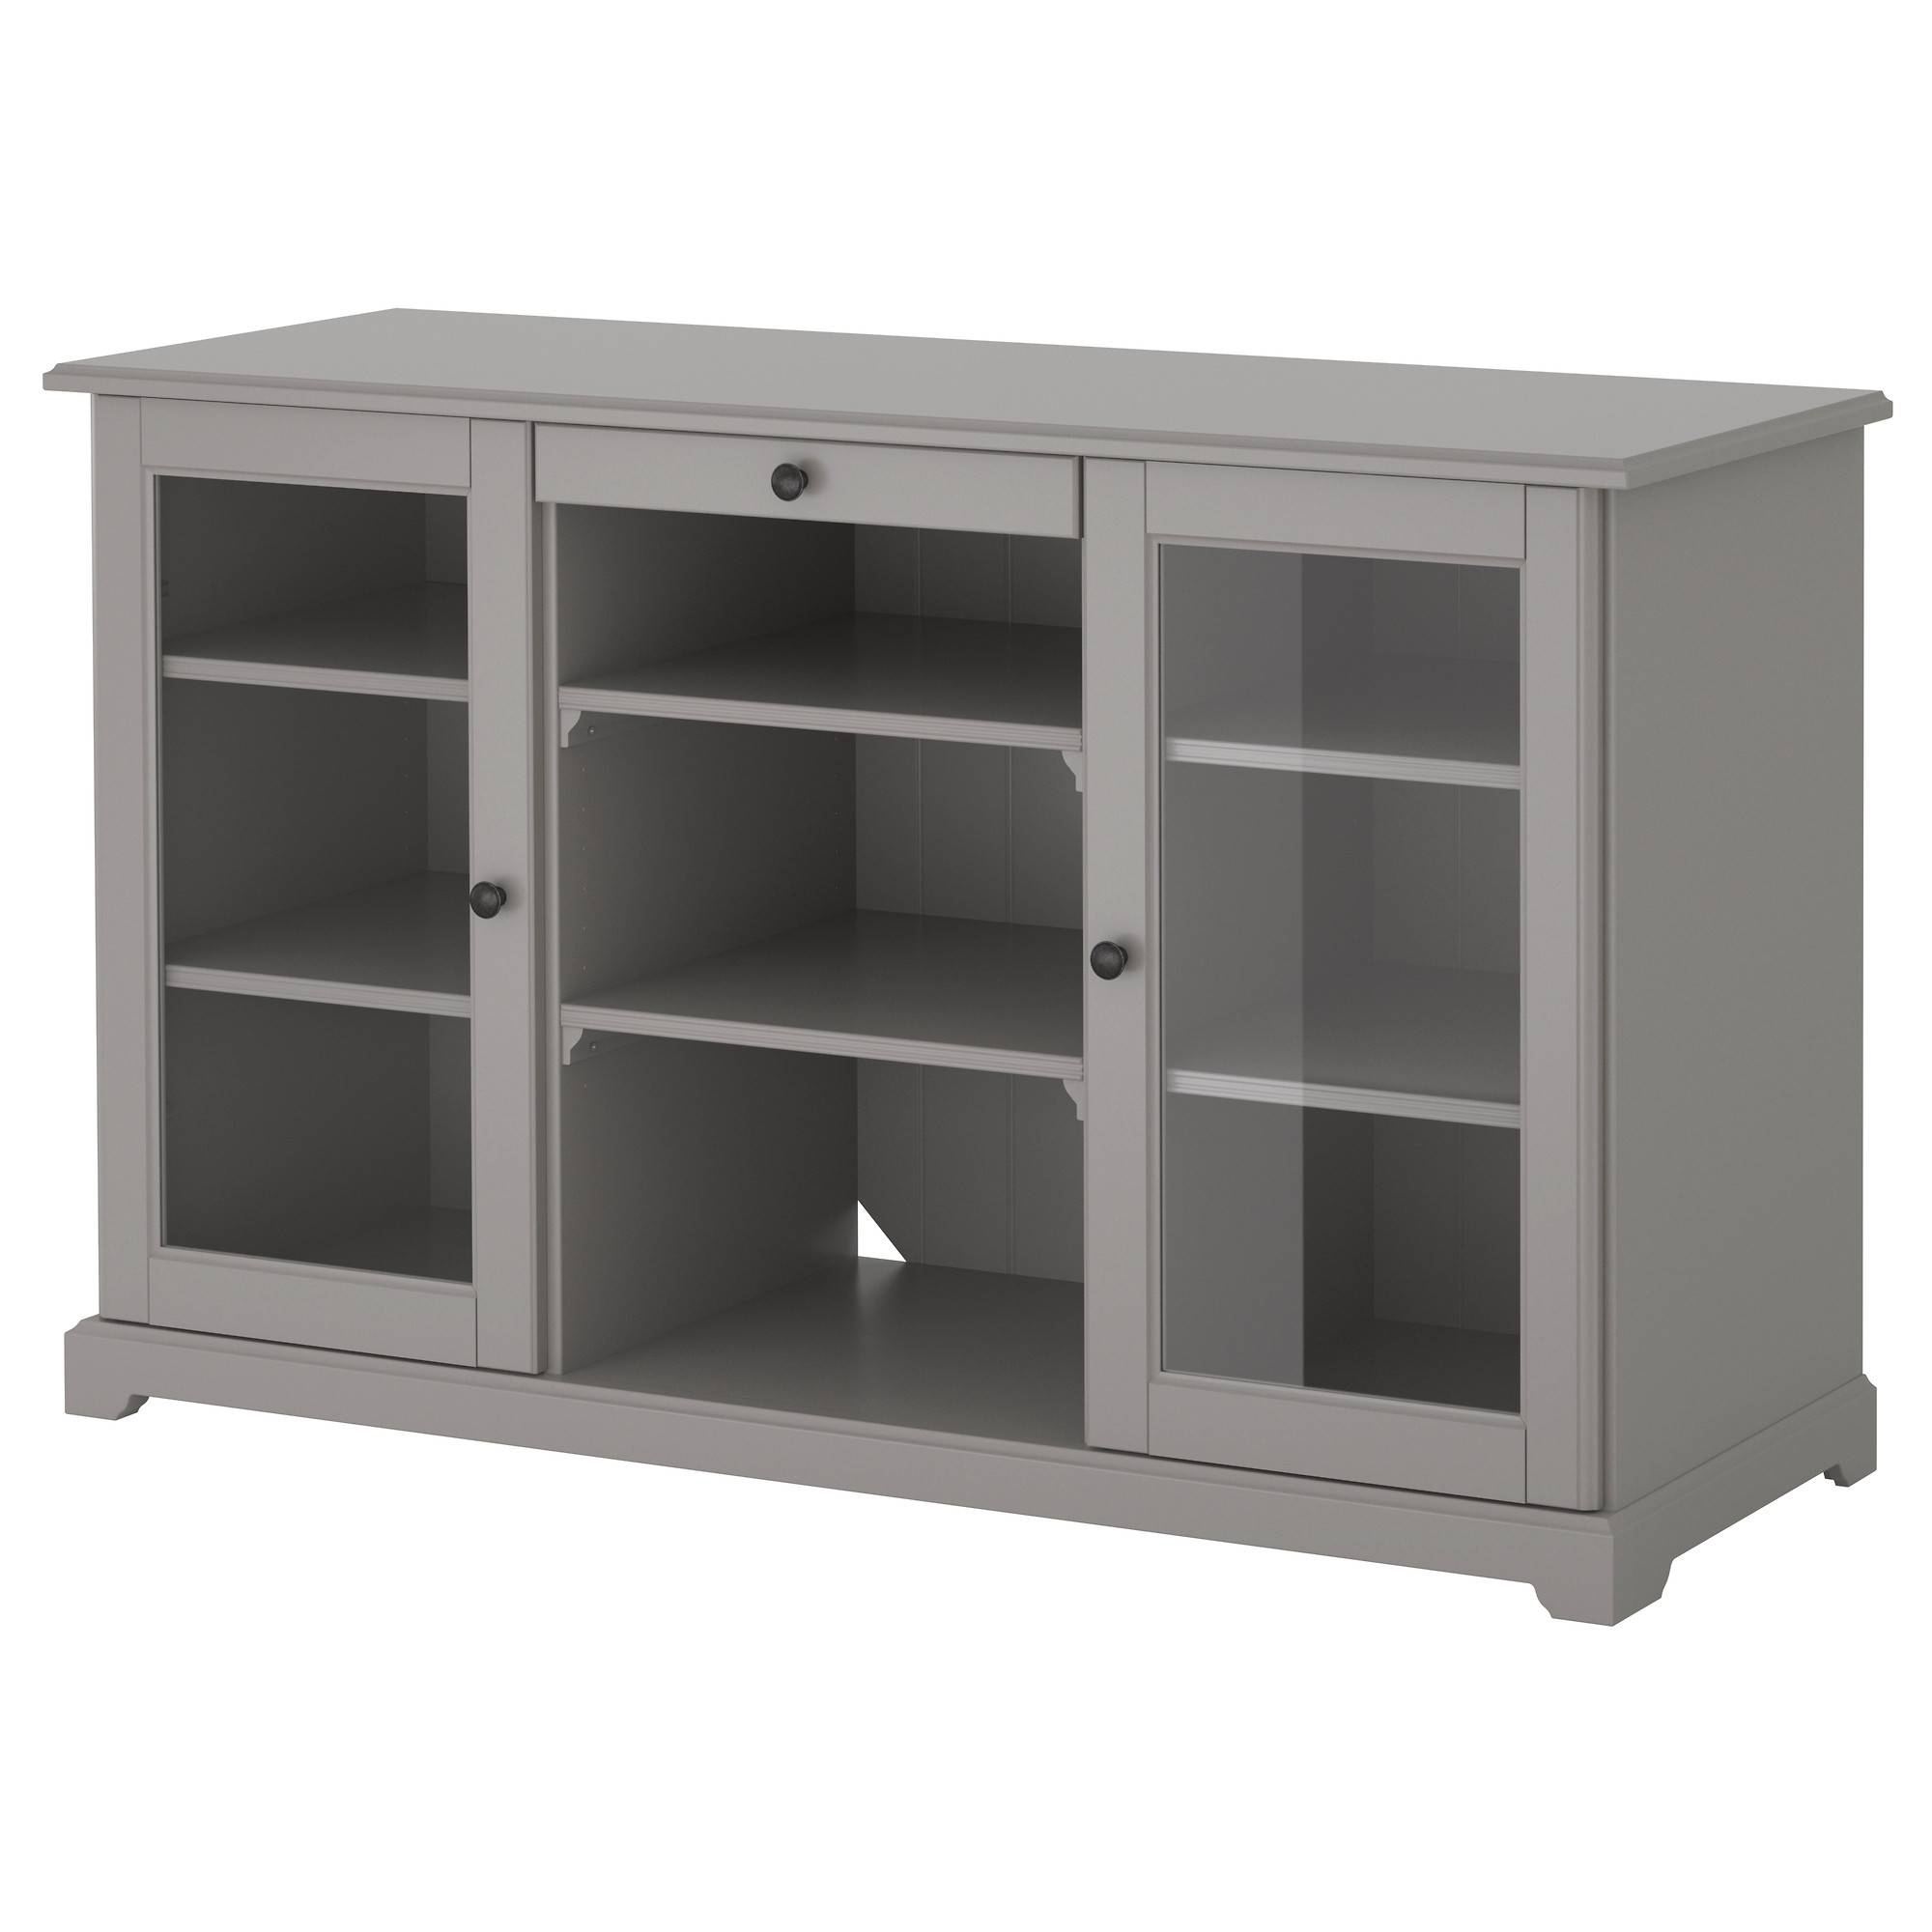 Liatorp Sideboard – Gray – Ikea With Regard To Liatorp Sideboards (View 5 of 15)